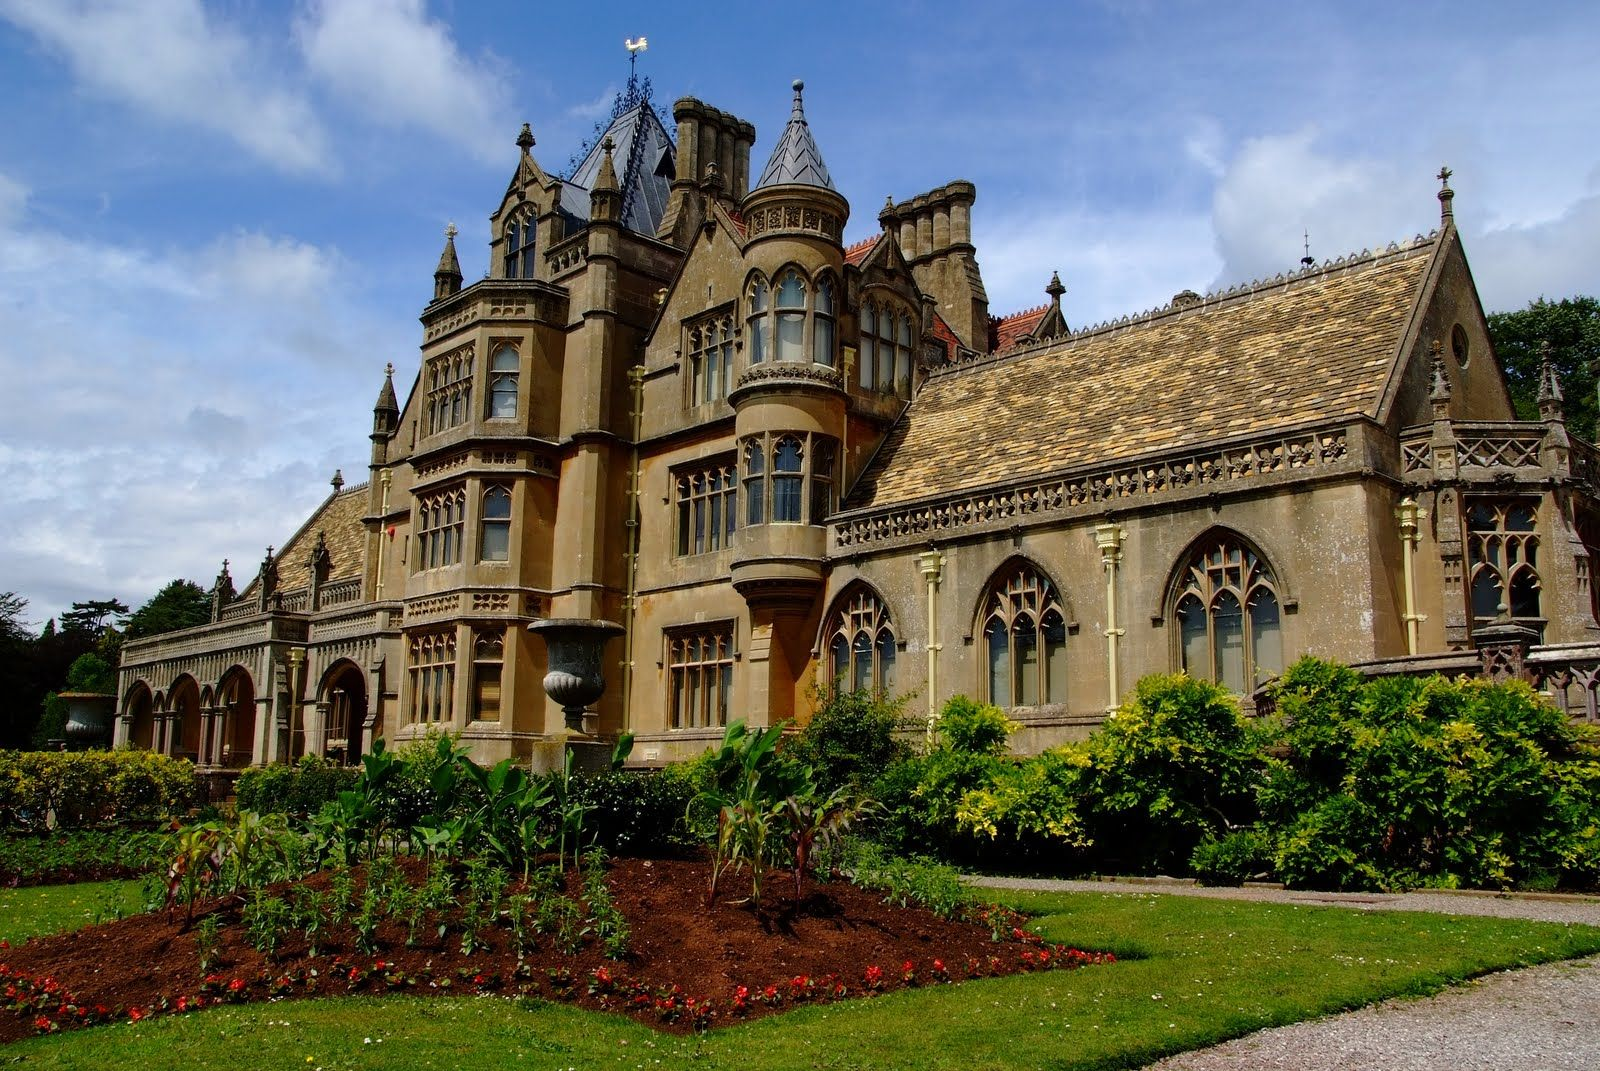 Tyntesfield manor house grand victorian gothic revival for Victorian manor house